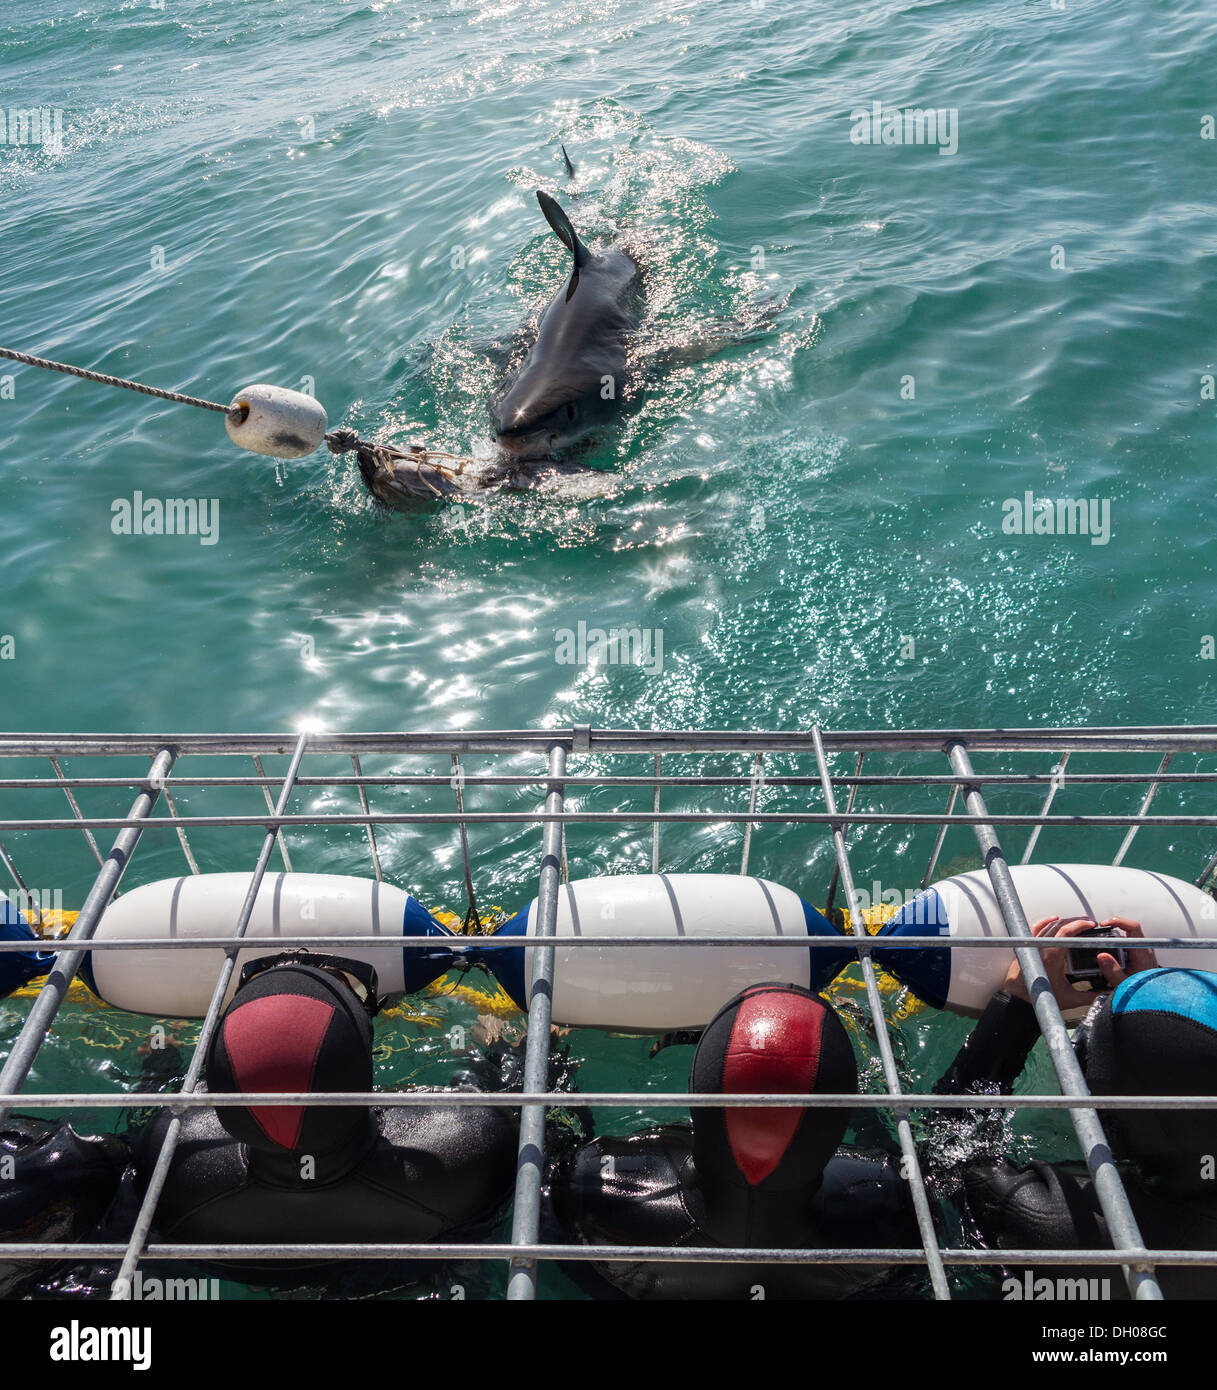 Great White Shark diving cage and tourist divers off Gansbaai coastline near Cape Town, South Africa - Stock Image